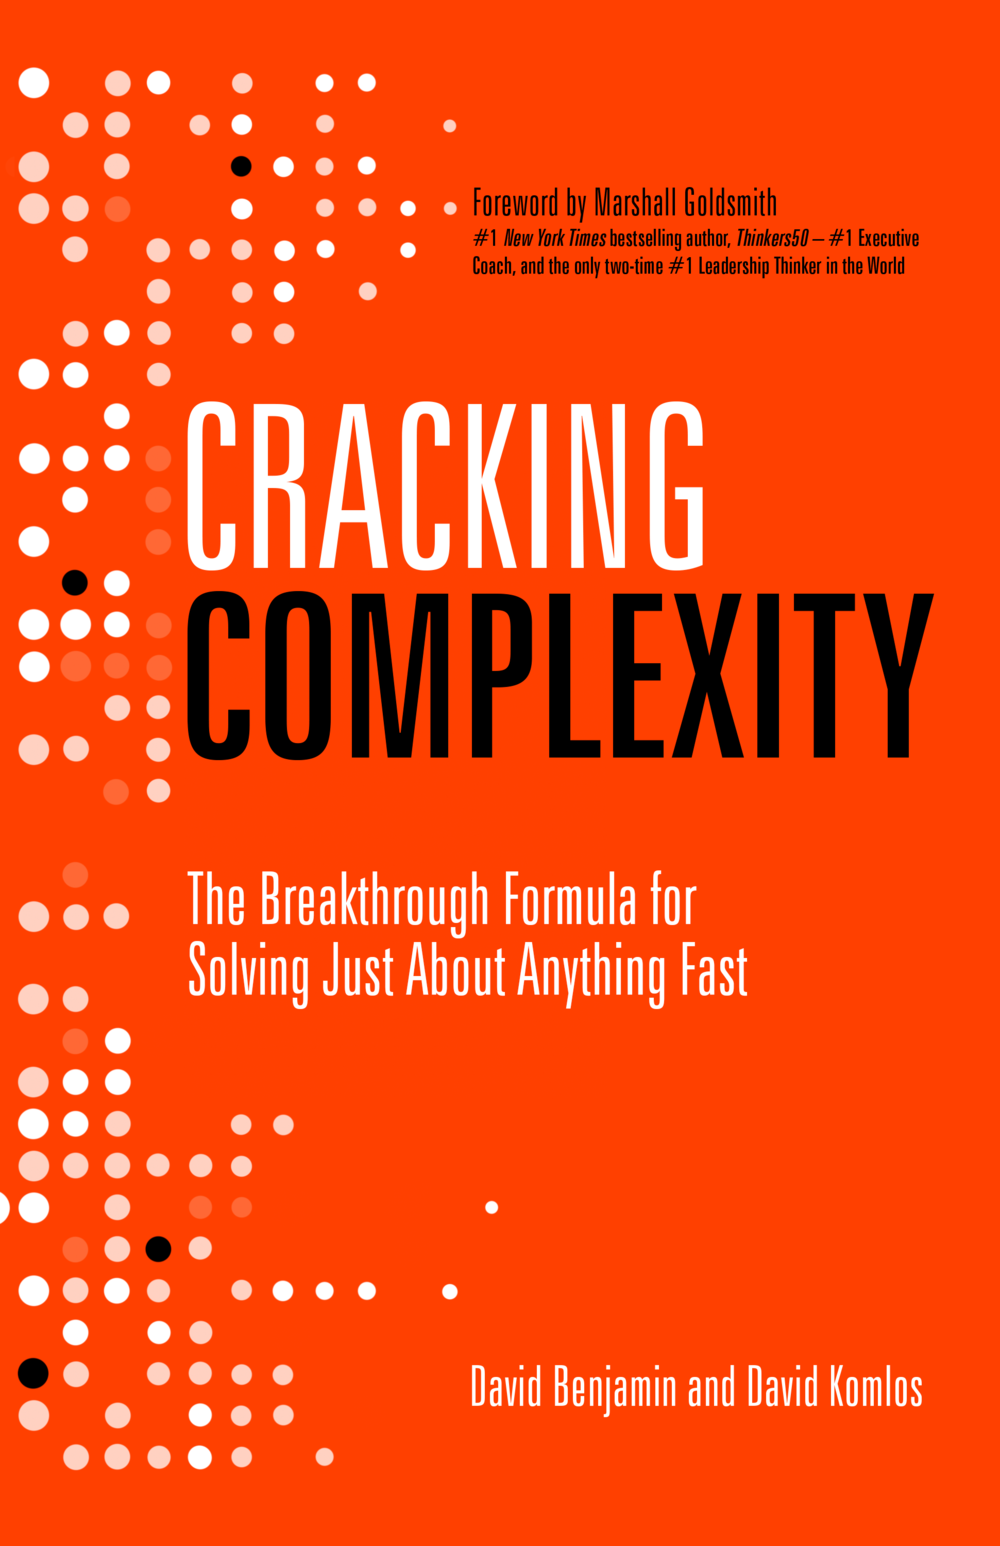 21Nov_Cracking Complexity_HB_6x9_.png